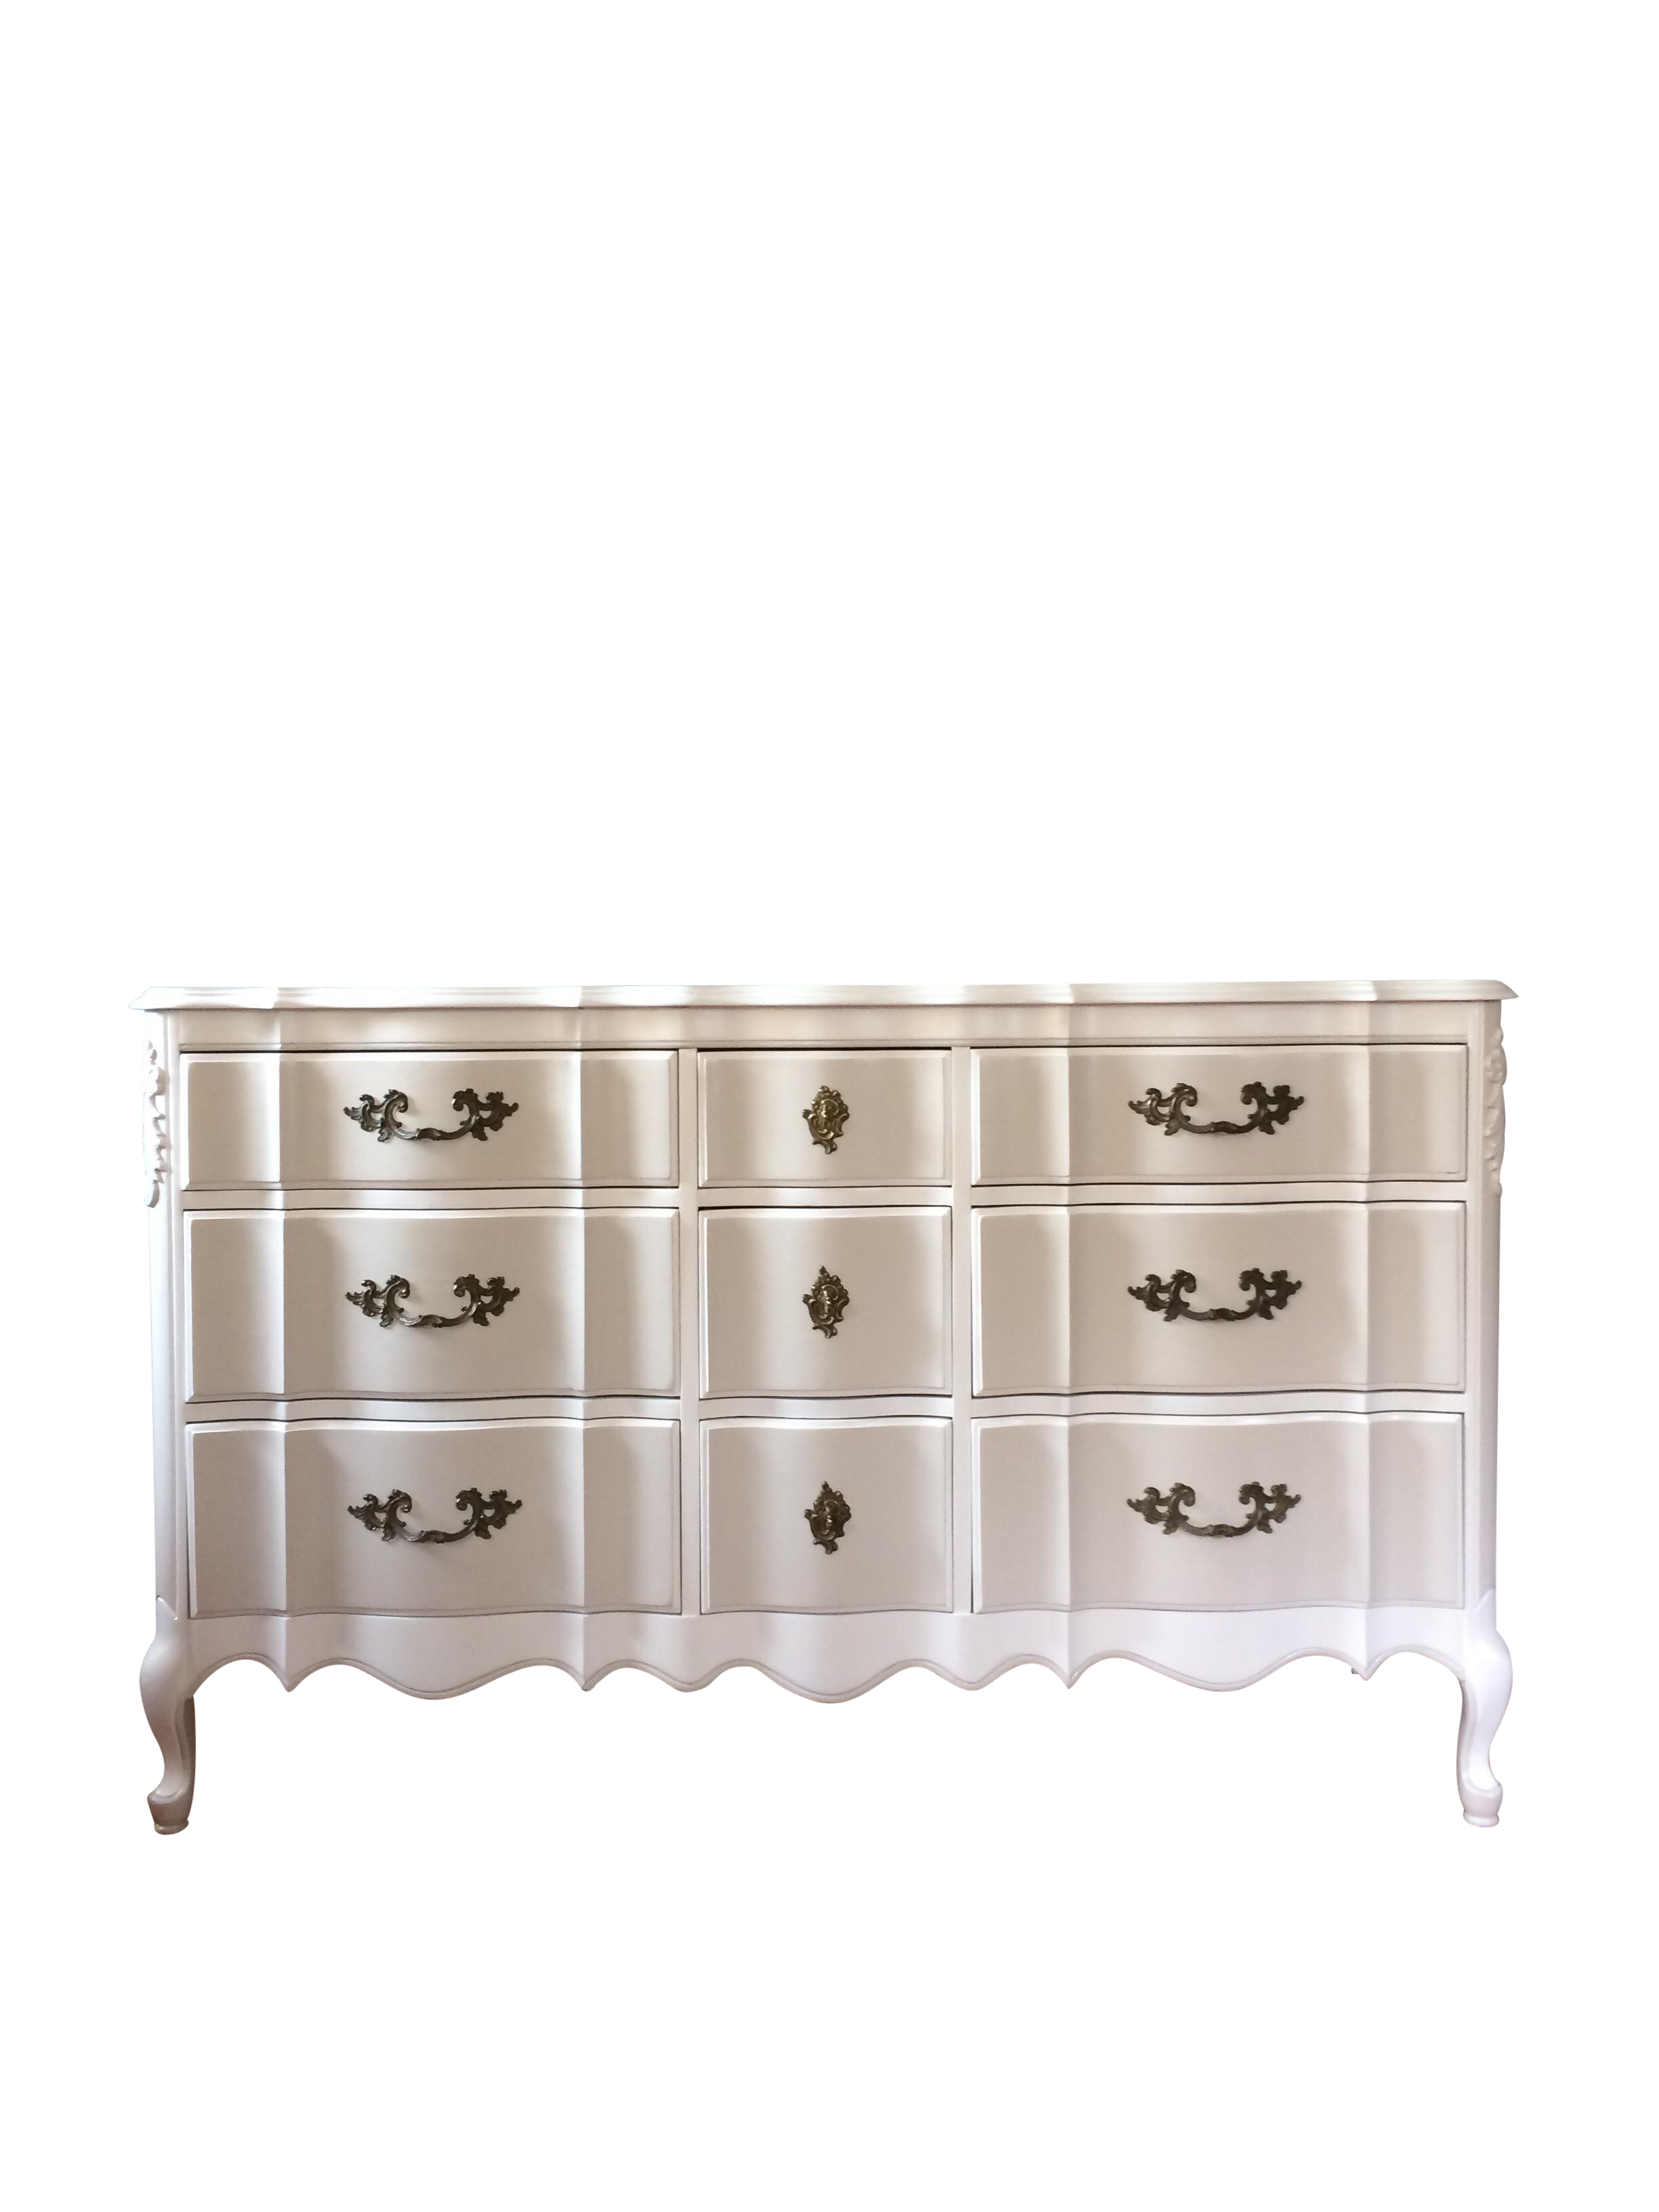 Solid Wood Two-Tone French Provincial Dresser | Chairish